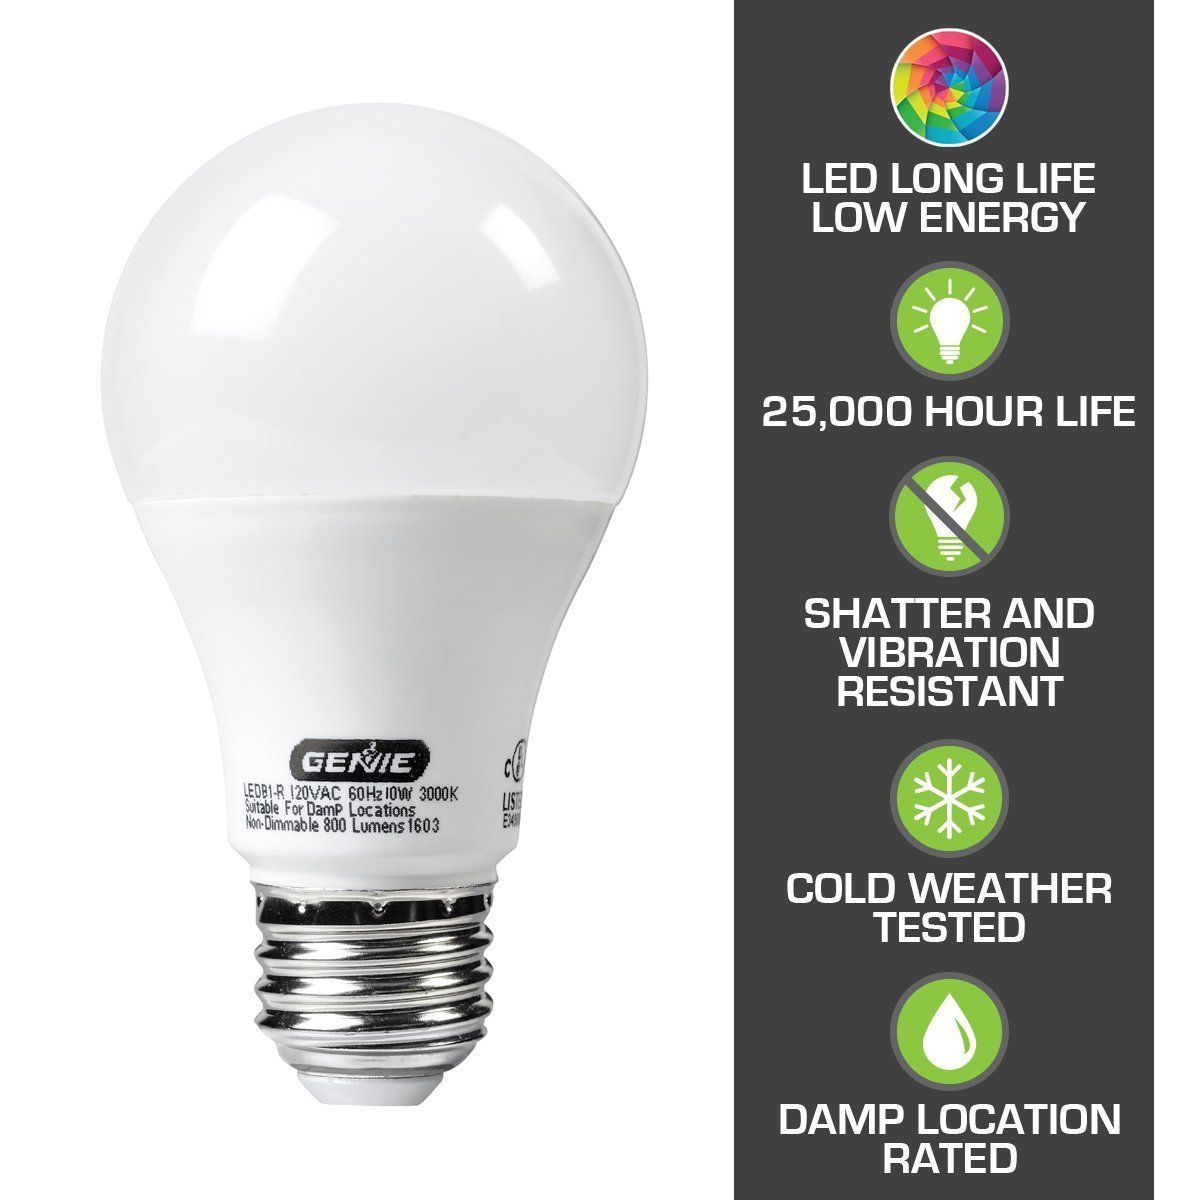 Genie Led Garage Door Opener Light Bulb 60 Watt 800 Lumens Made To